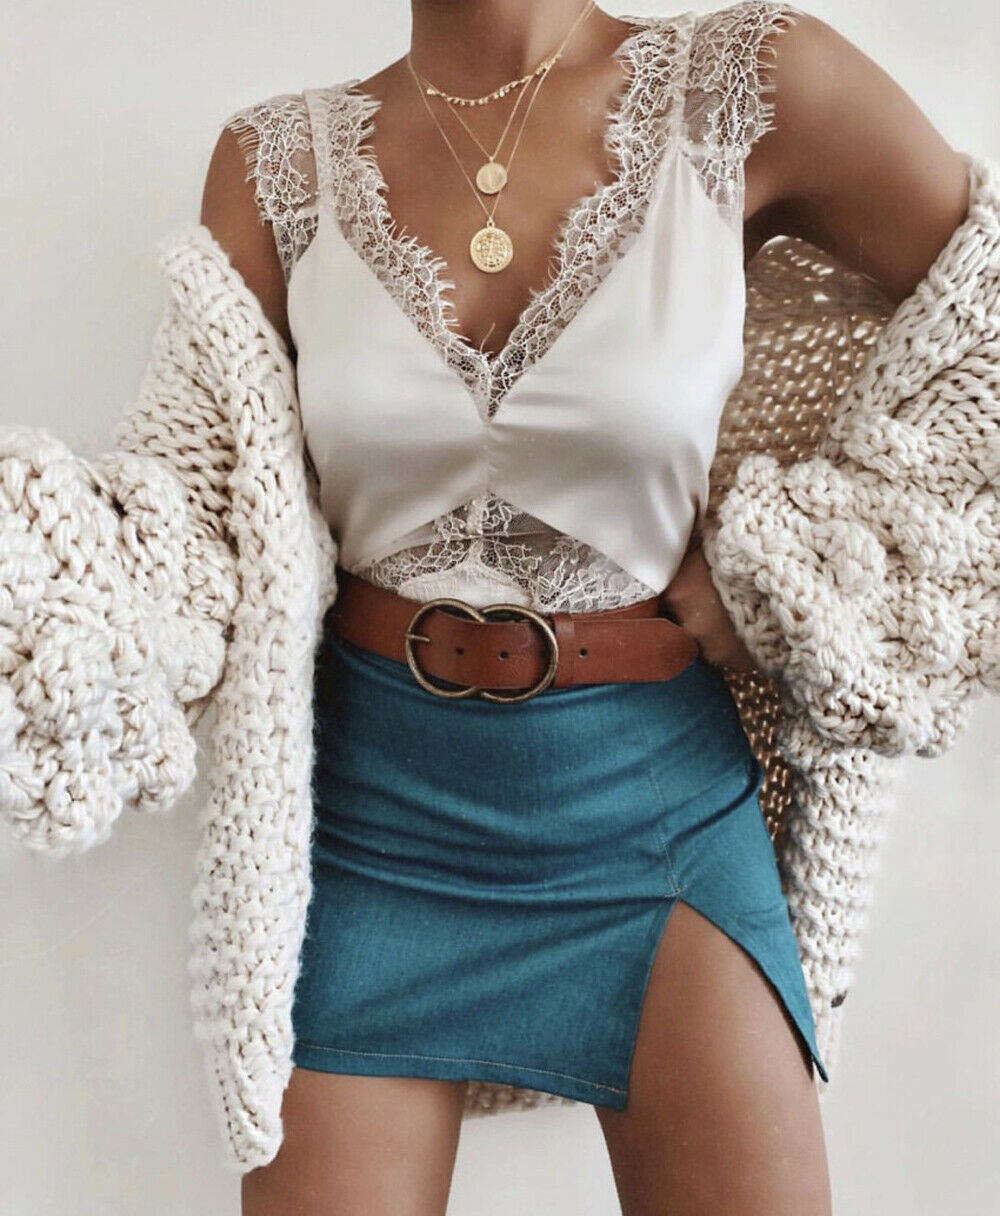 2019 New Hot Sale Fashion Short Top Casual Camisole Lace V-Neck Sleeveless Loose  Off Shoulder Summer Tanks Tops